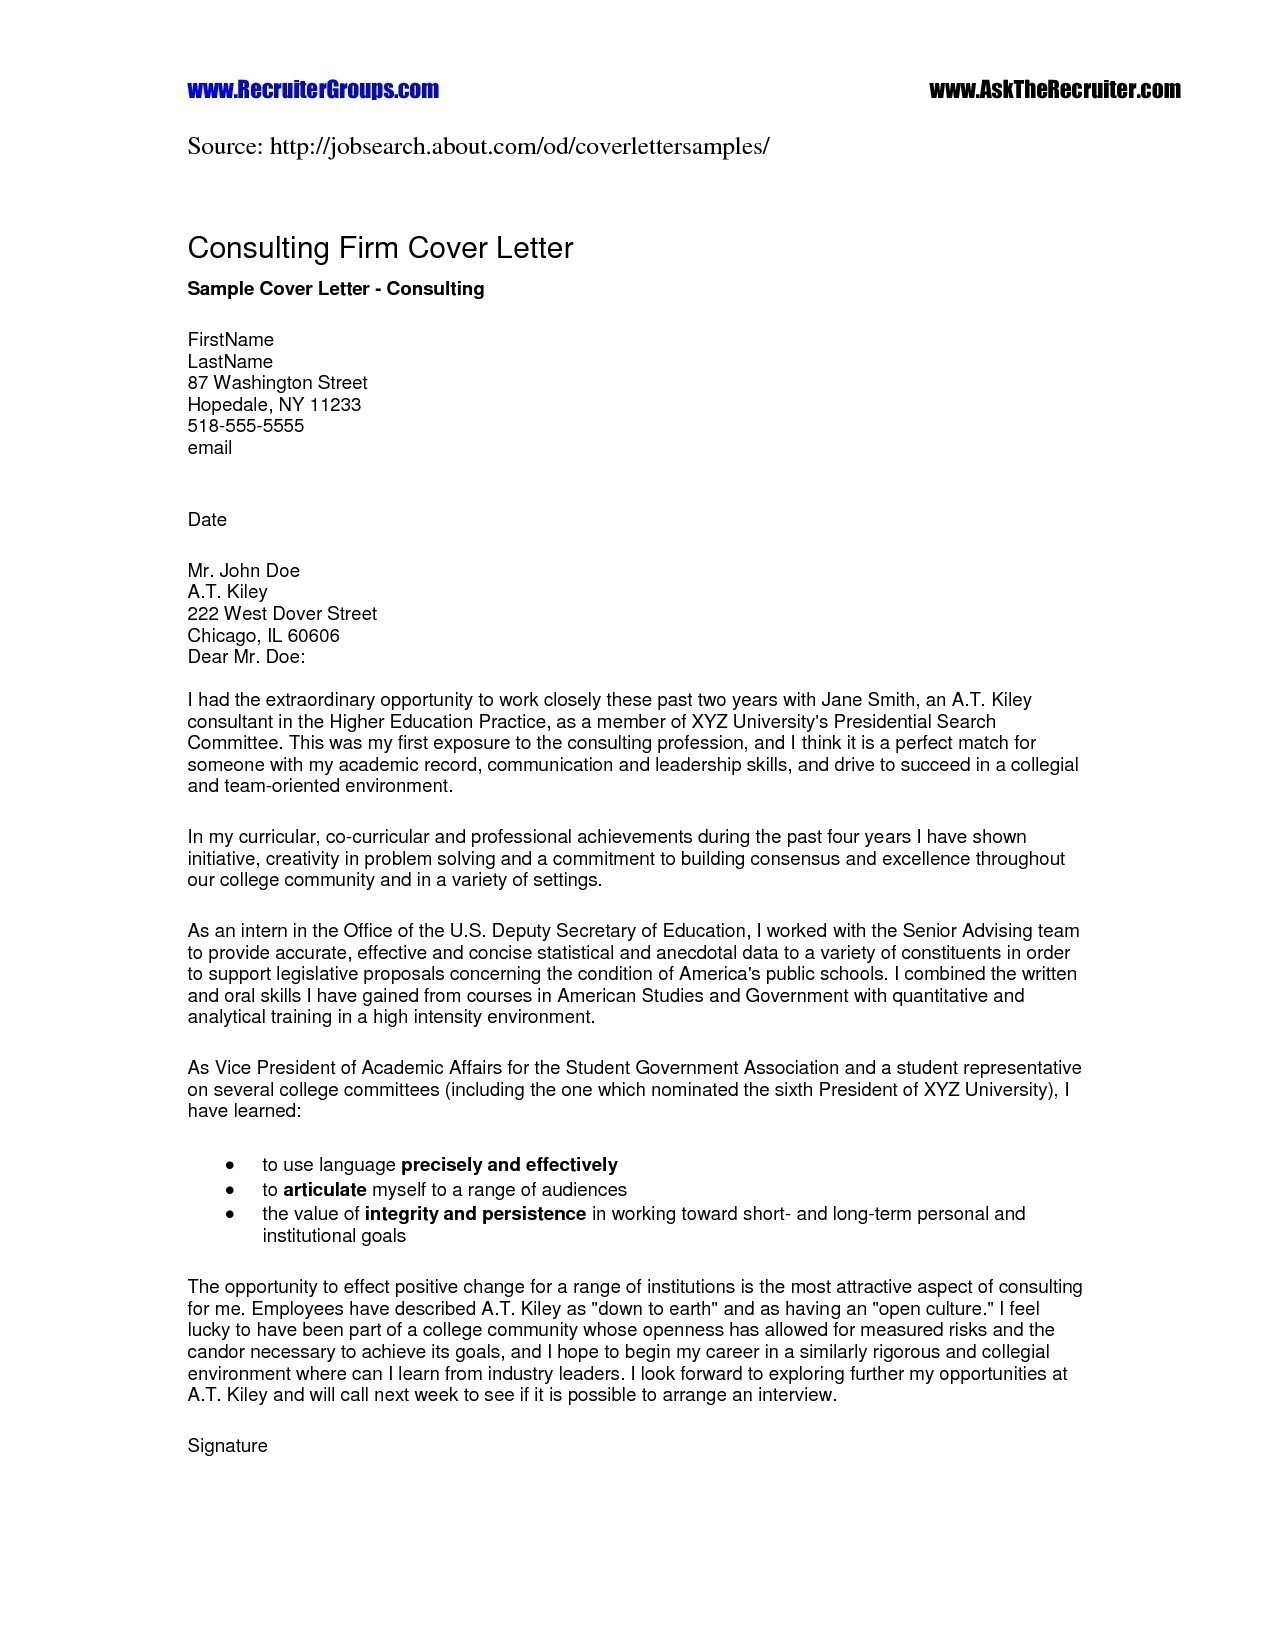 Sample Hire Letter Template - How to Write Job Fer Letter Fresh Job Fer Letter Sample Best Job